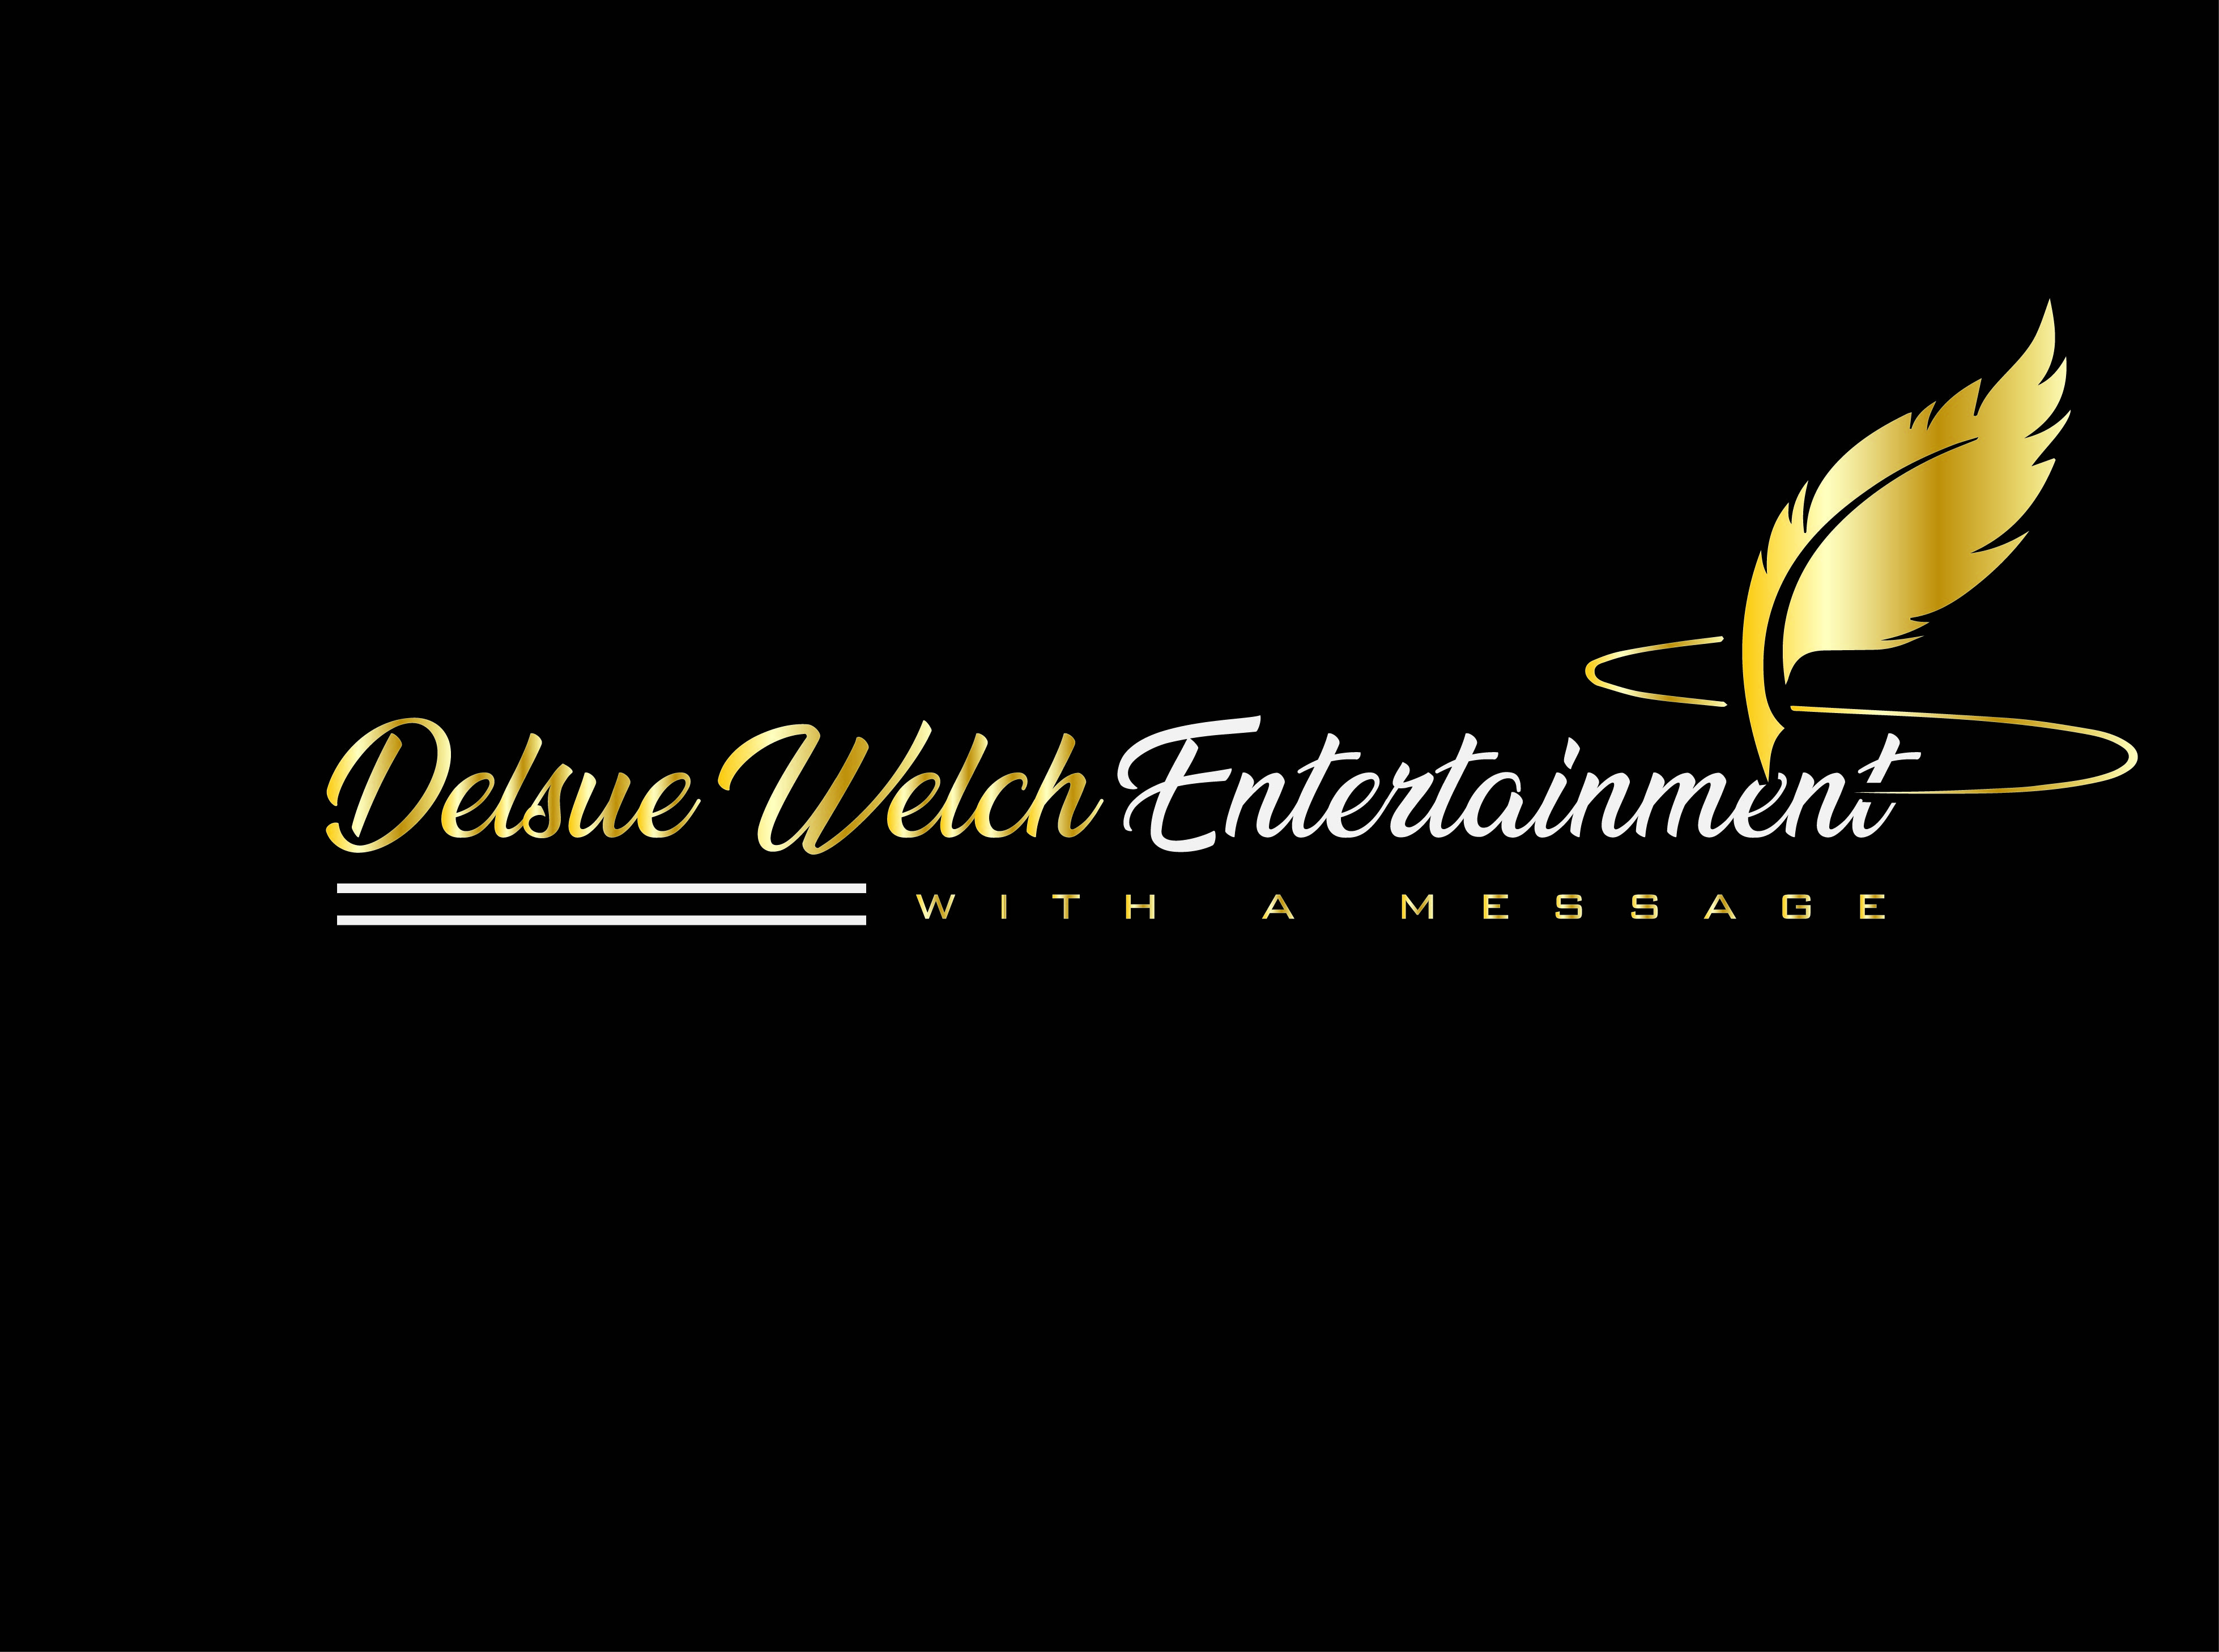 """Delsue Welch Entertainment opens Auditions for The Stage Play """"An Interview with God"""""""